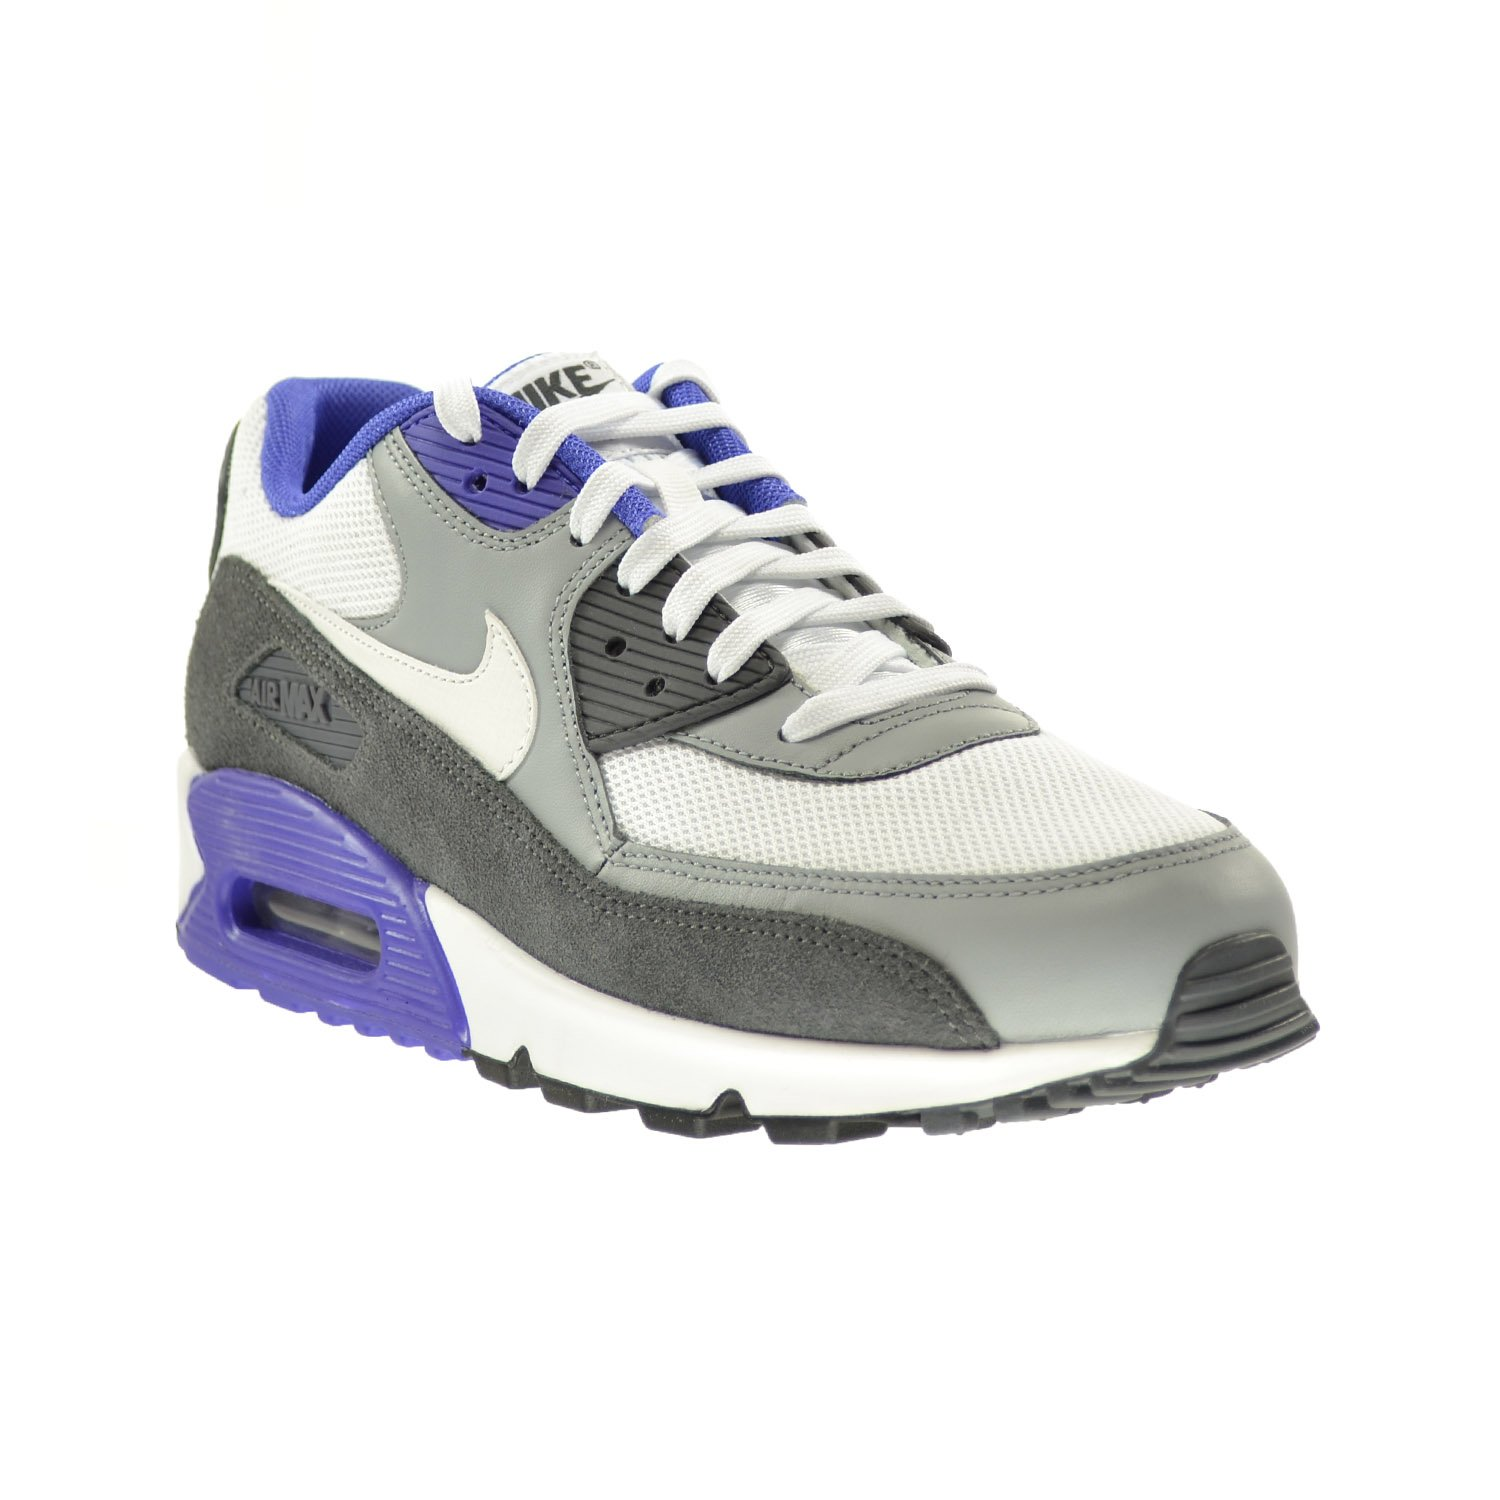 uk availability a2e19 0eec4 ... promo code for amazon nike air max 90 essential mens shoes white white  silver dark grey